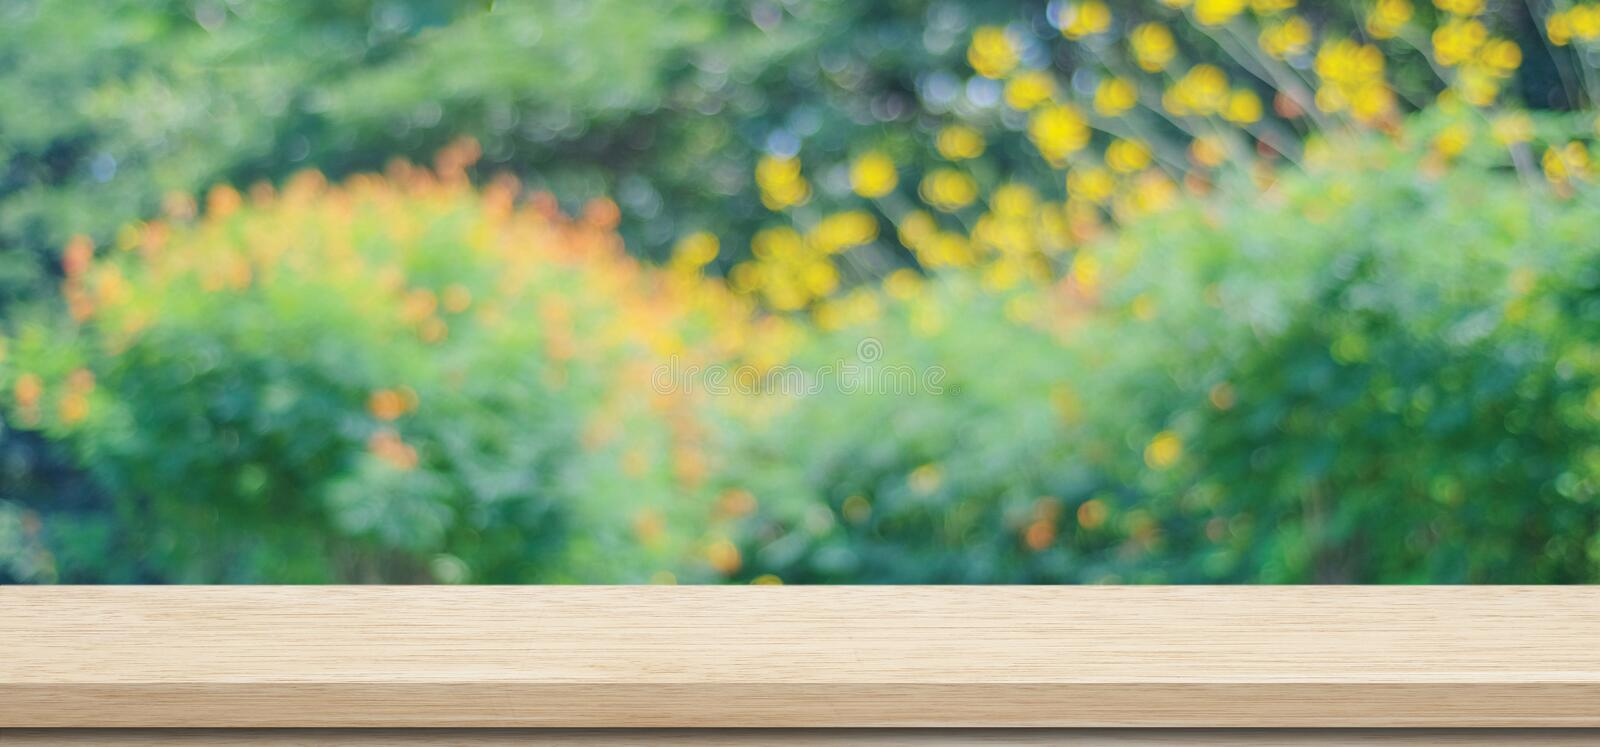 Wooden table for food, product display over blur green garden background, Empty wooden shelf, desk and blur tree park with bokeh stock photos